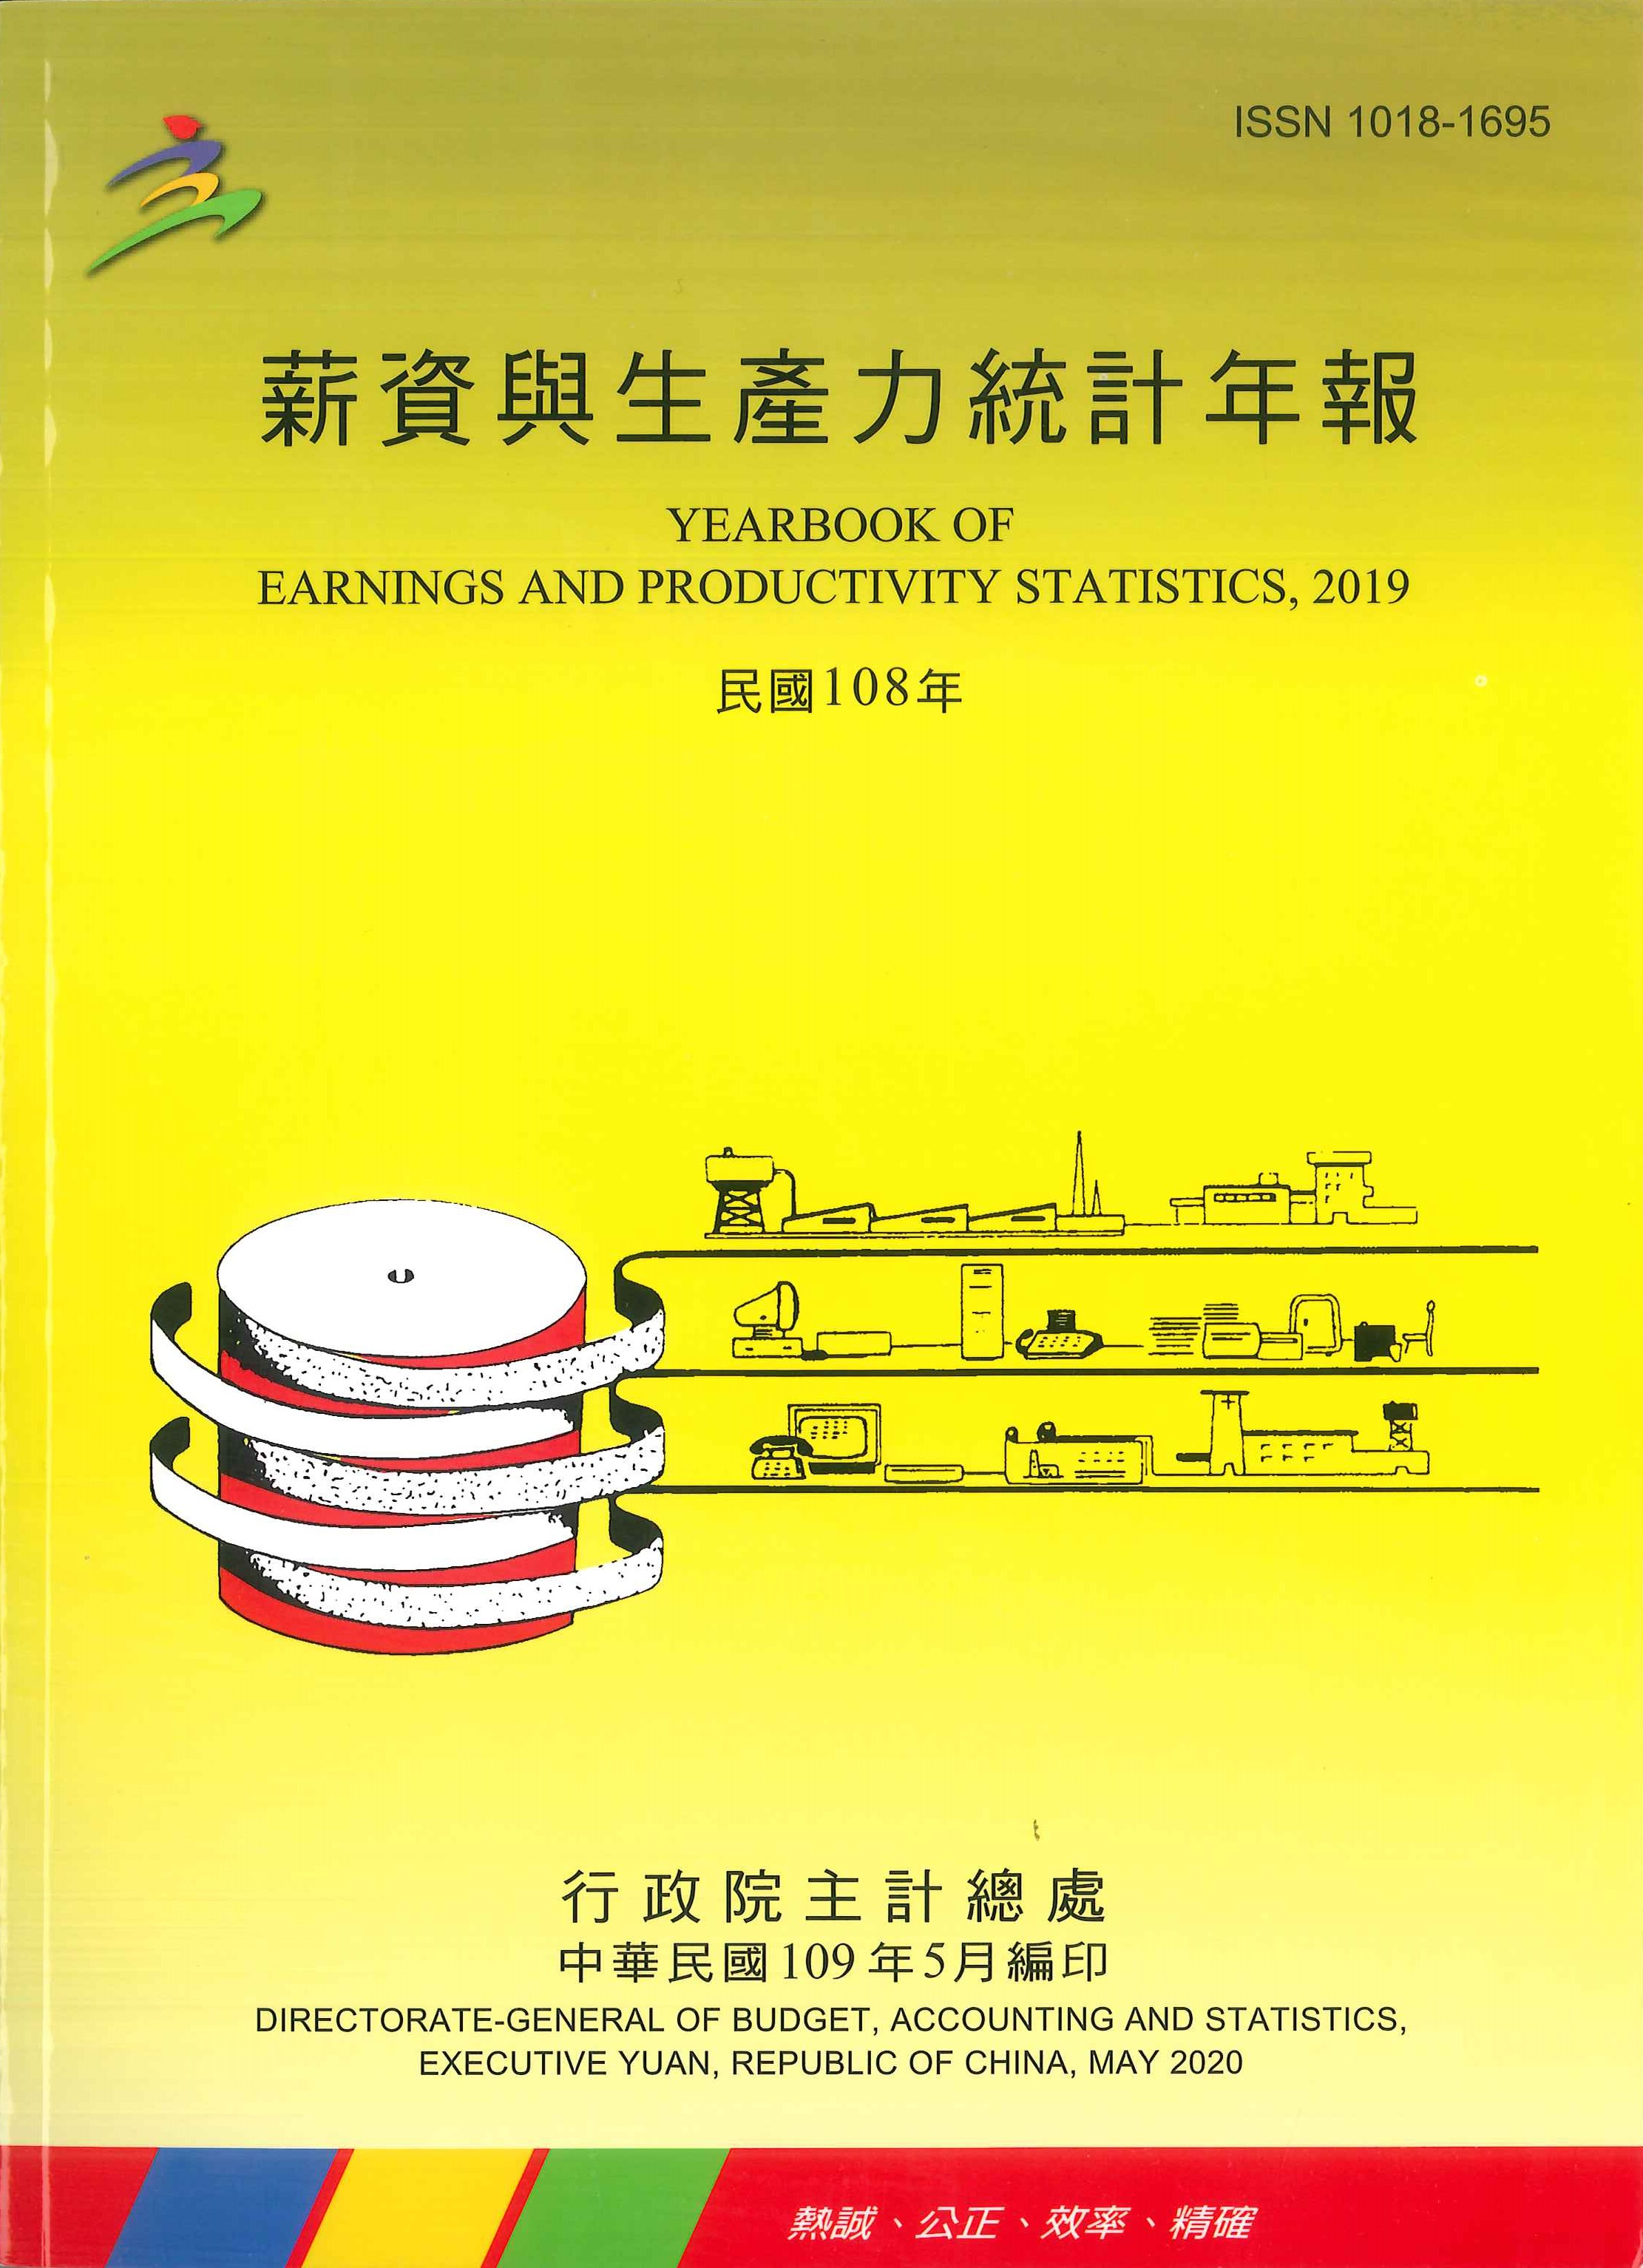 薪資與生產力統計年報=Yearbook of earning and productivity statistics